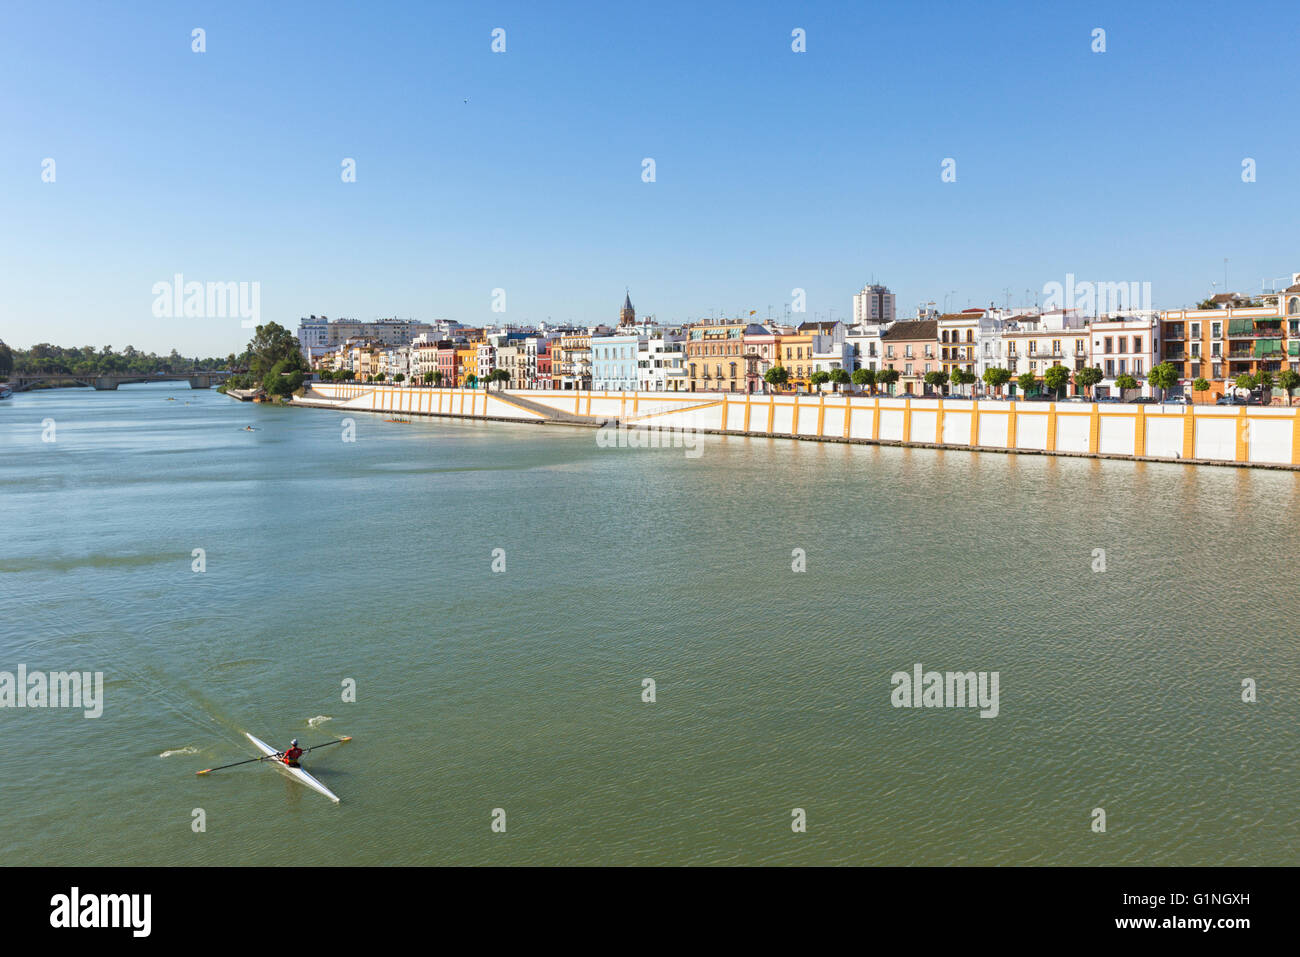 Waterfront of Triana neighborhood on Guadalquivir river, Seville, Spain. Rowing boat in foreground. - Stock Image